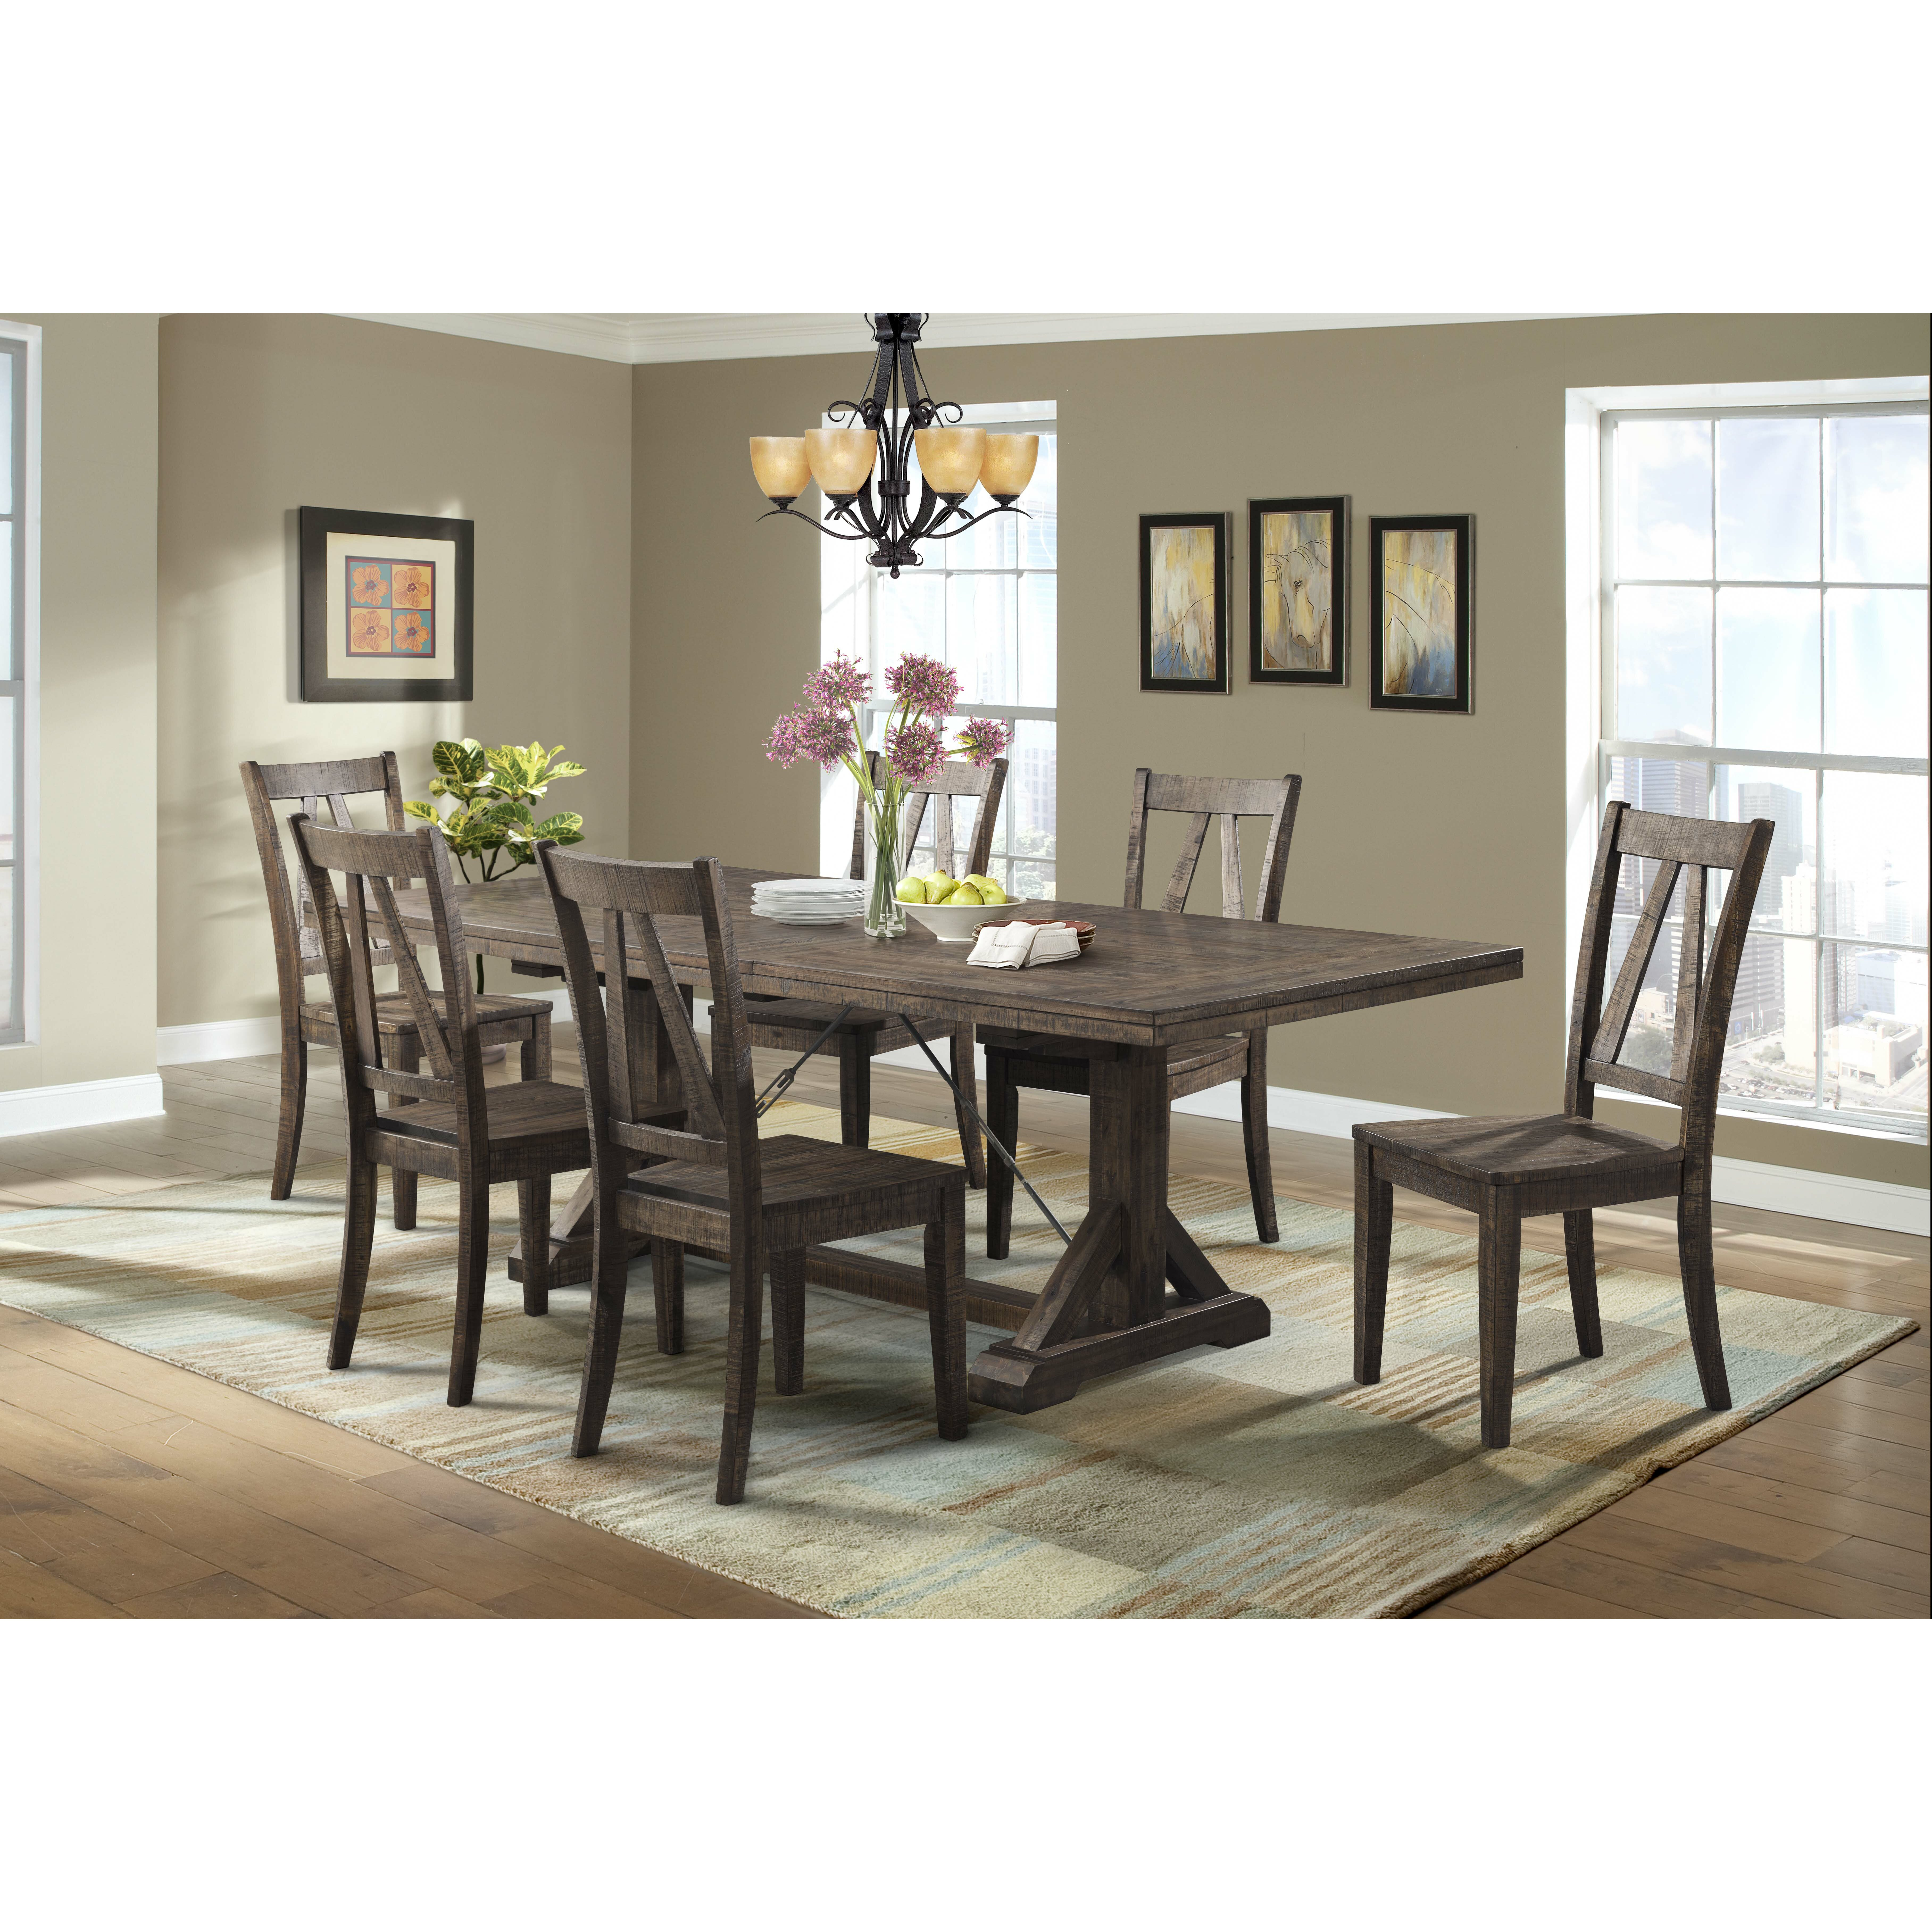 Dining Tables With Bench: Laurel Foundry Modern Farmhouse Guerande Dining Table